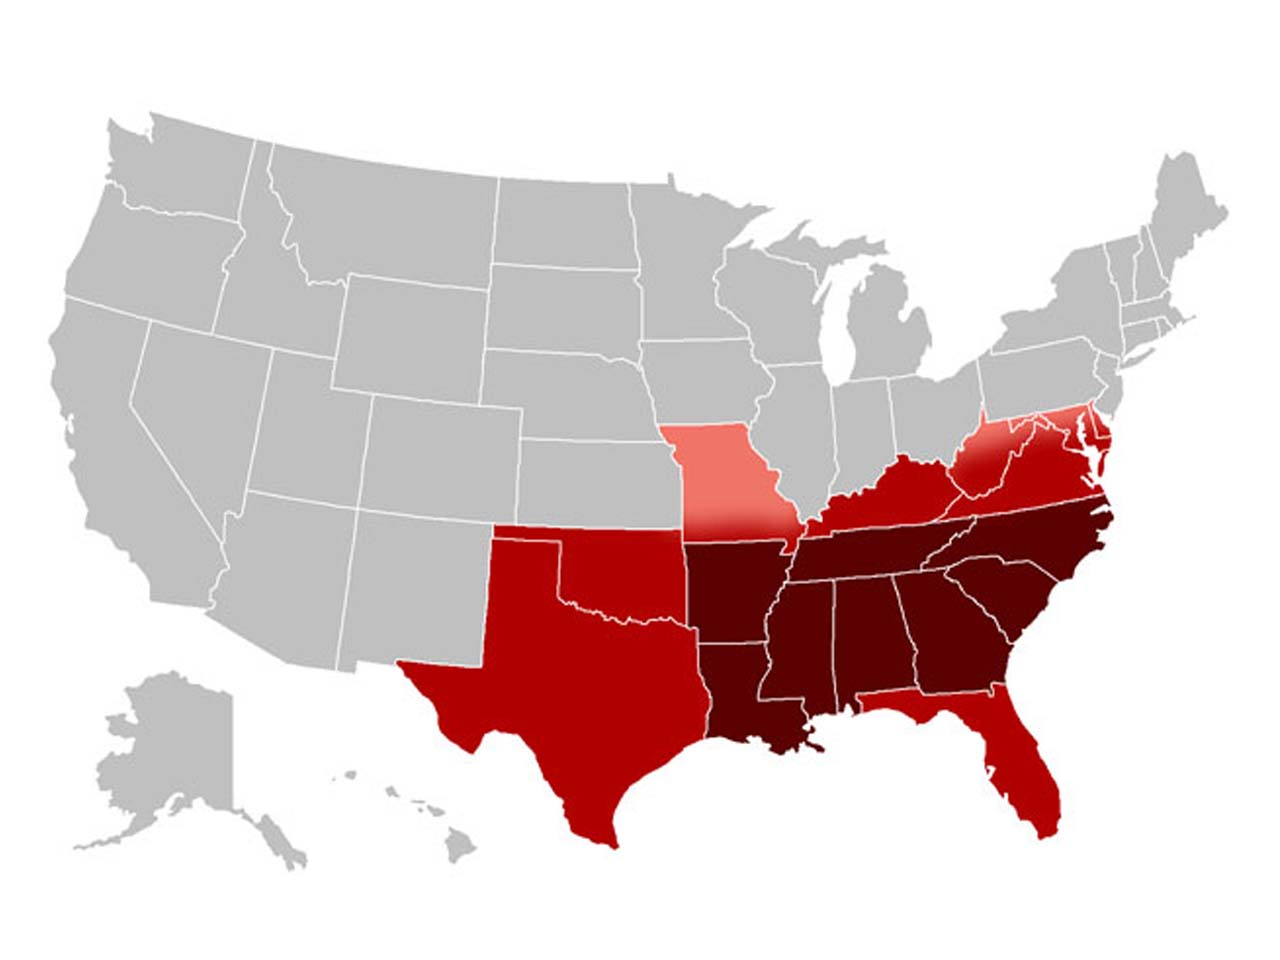 In the U.S., when it comes to mental illness, southern states have a higher prevalence than the rest of the country. Reports indicate that the rate of depression in Mississippi were 13.7% in contrast to North Dakota's 4.3%.